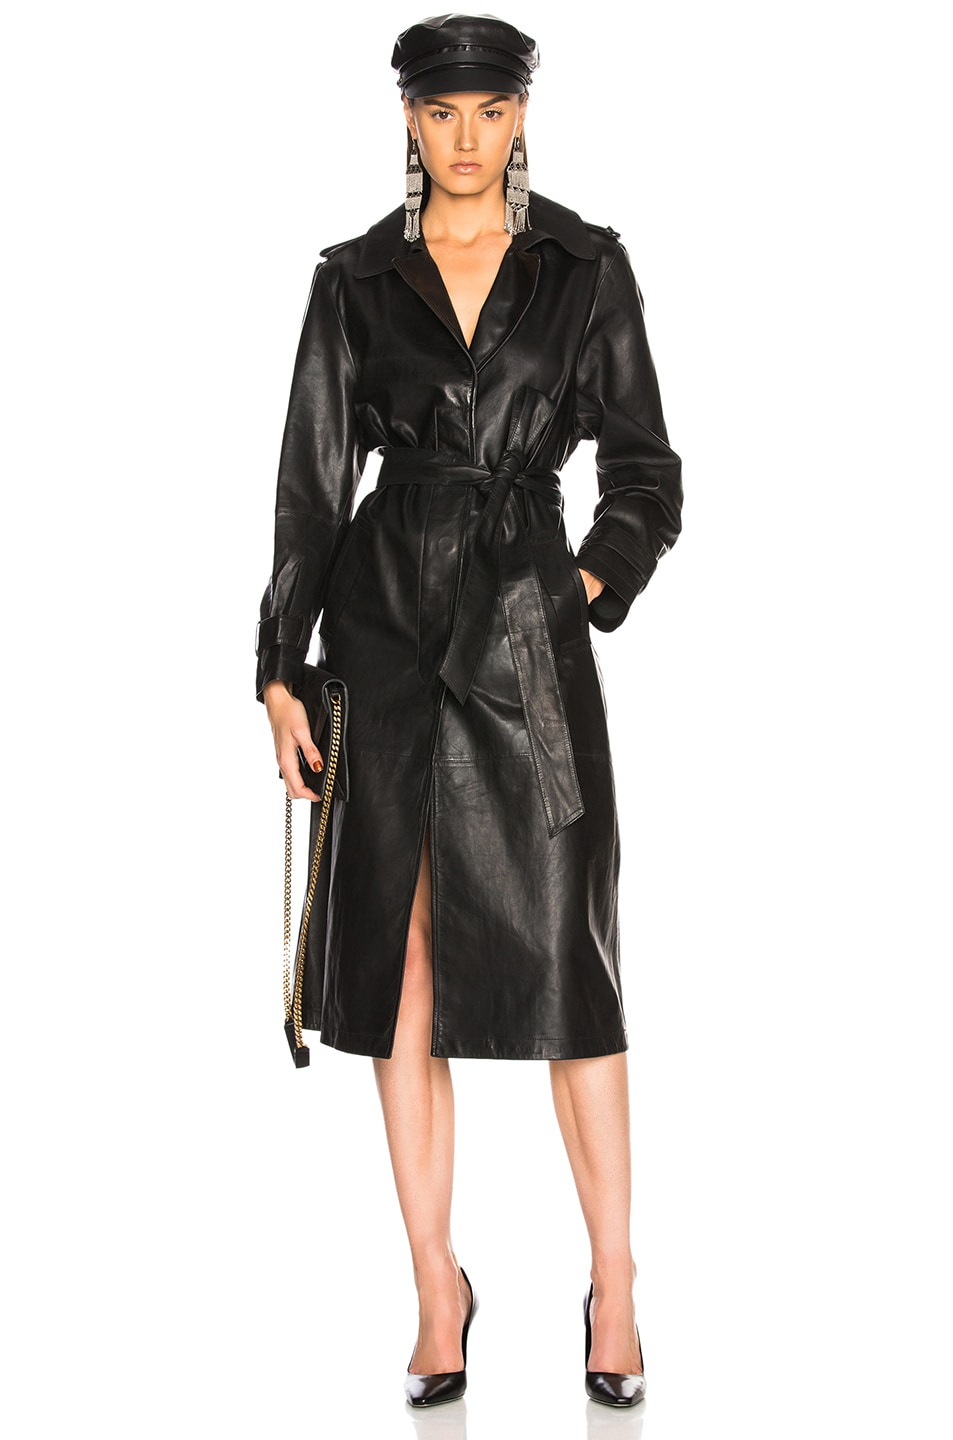 Image 1 of Palmer Girls x Miss Sixty Leather Trench Coat in Black